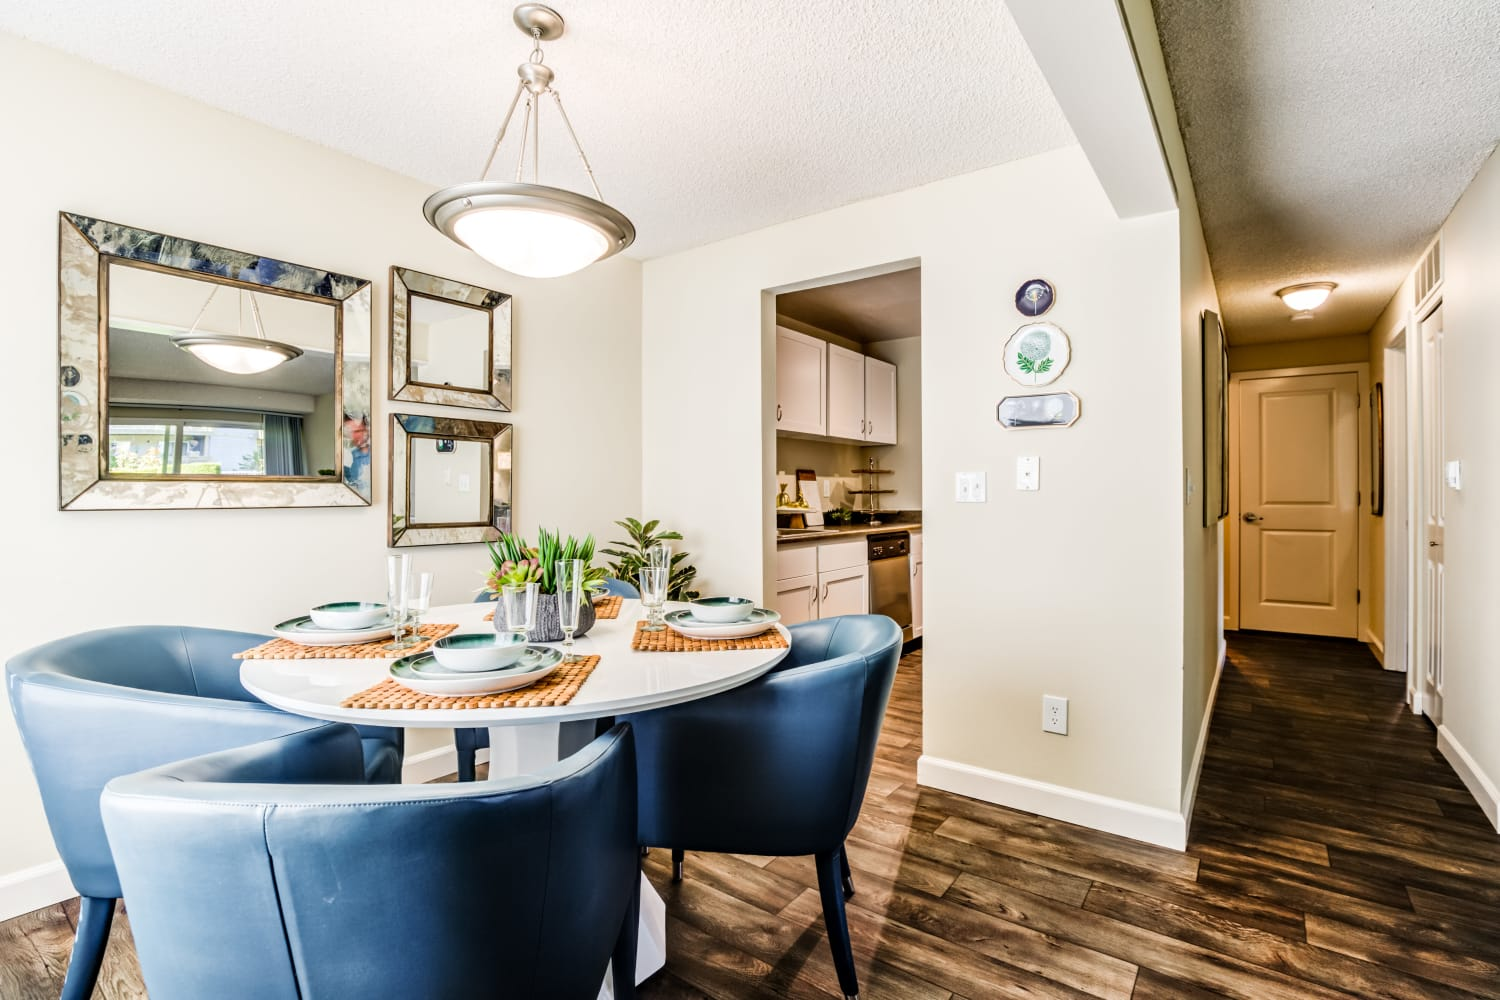 Dining space off of kitchen at Edgewood Park Apartments in Bellevue, Washington